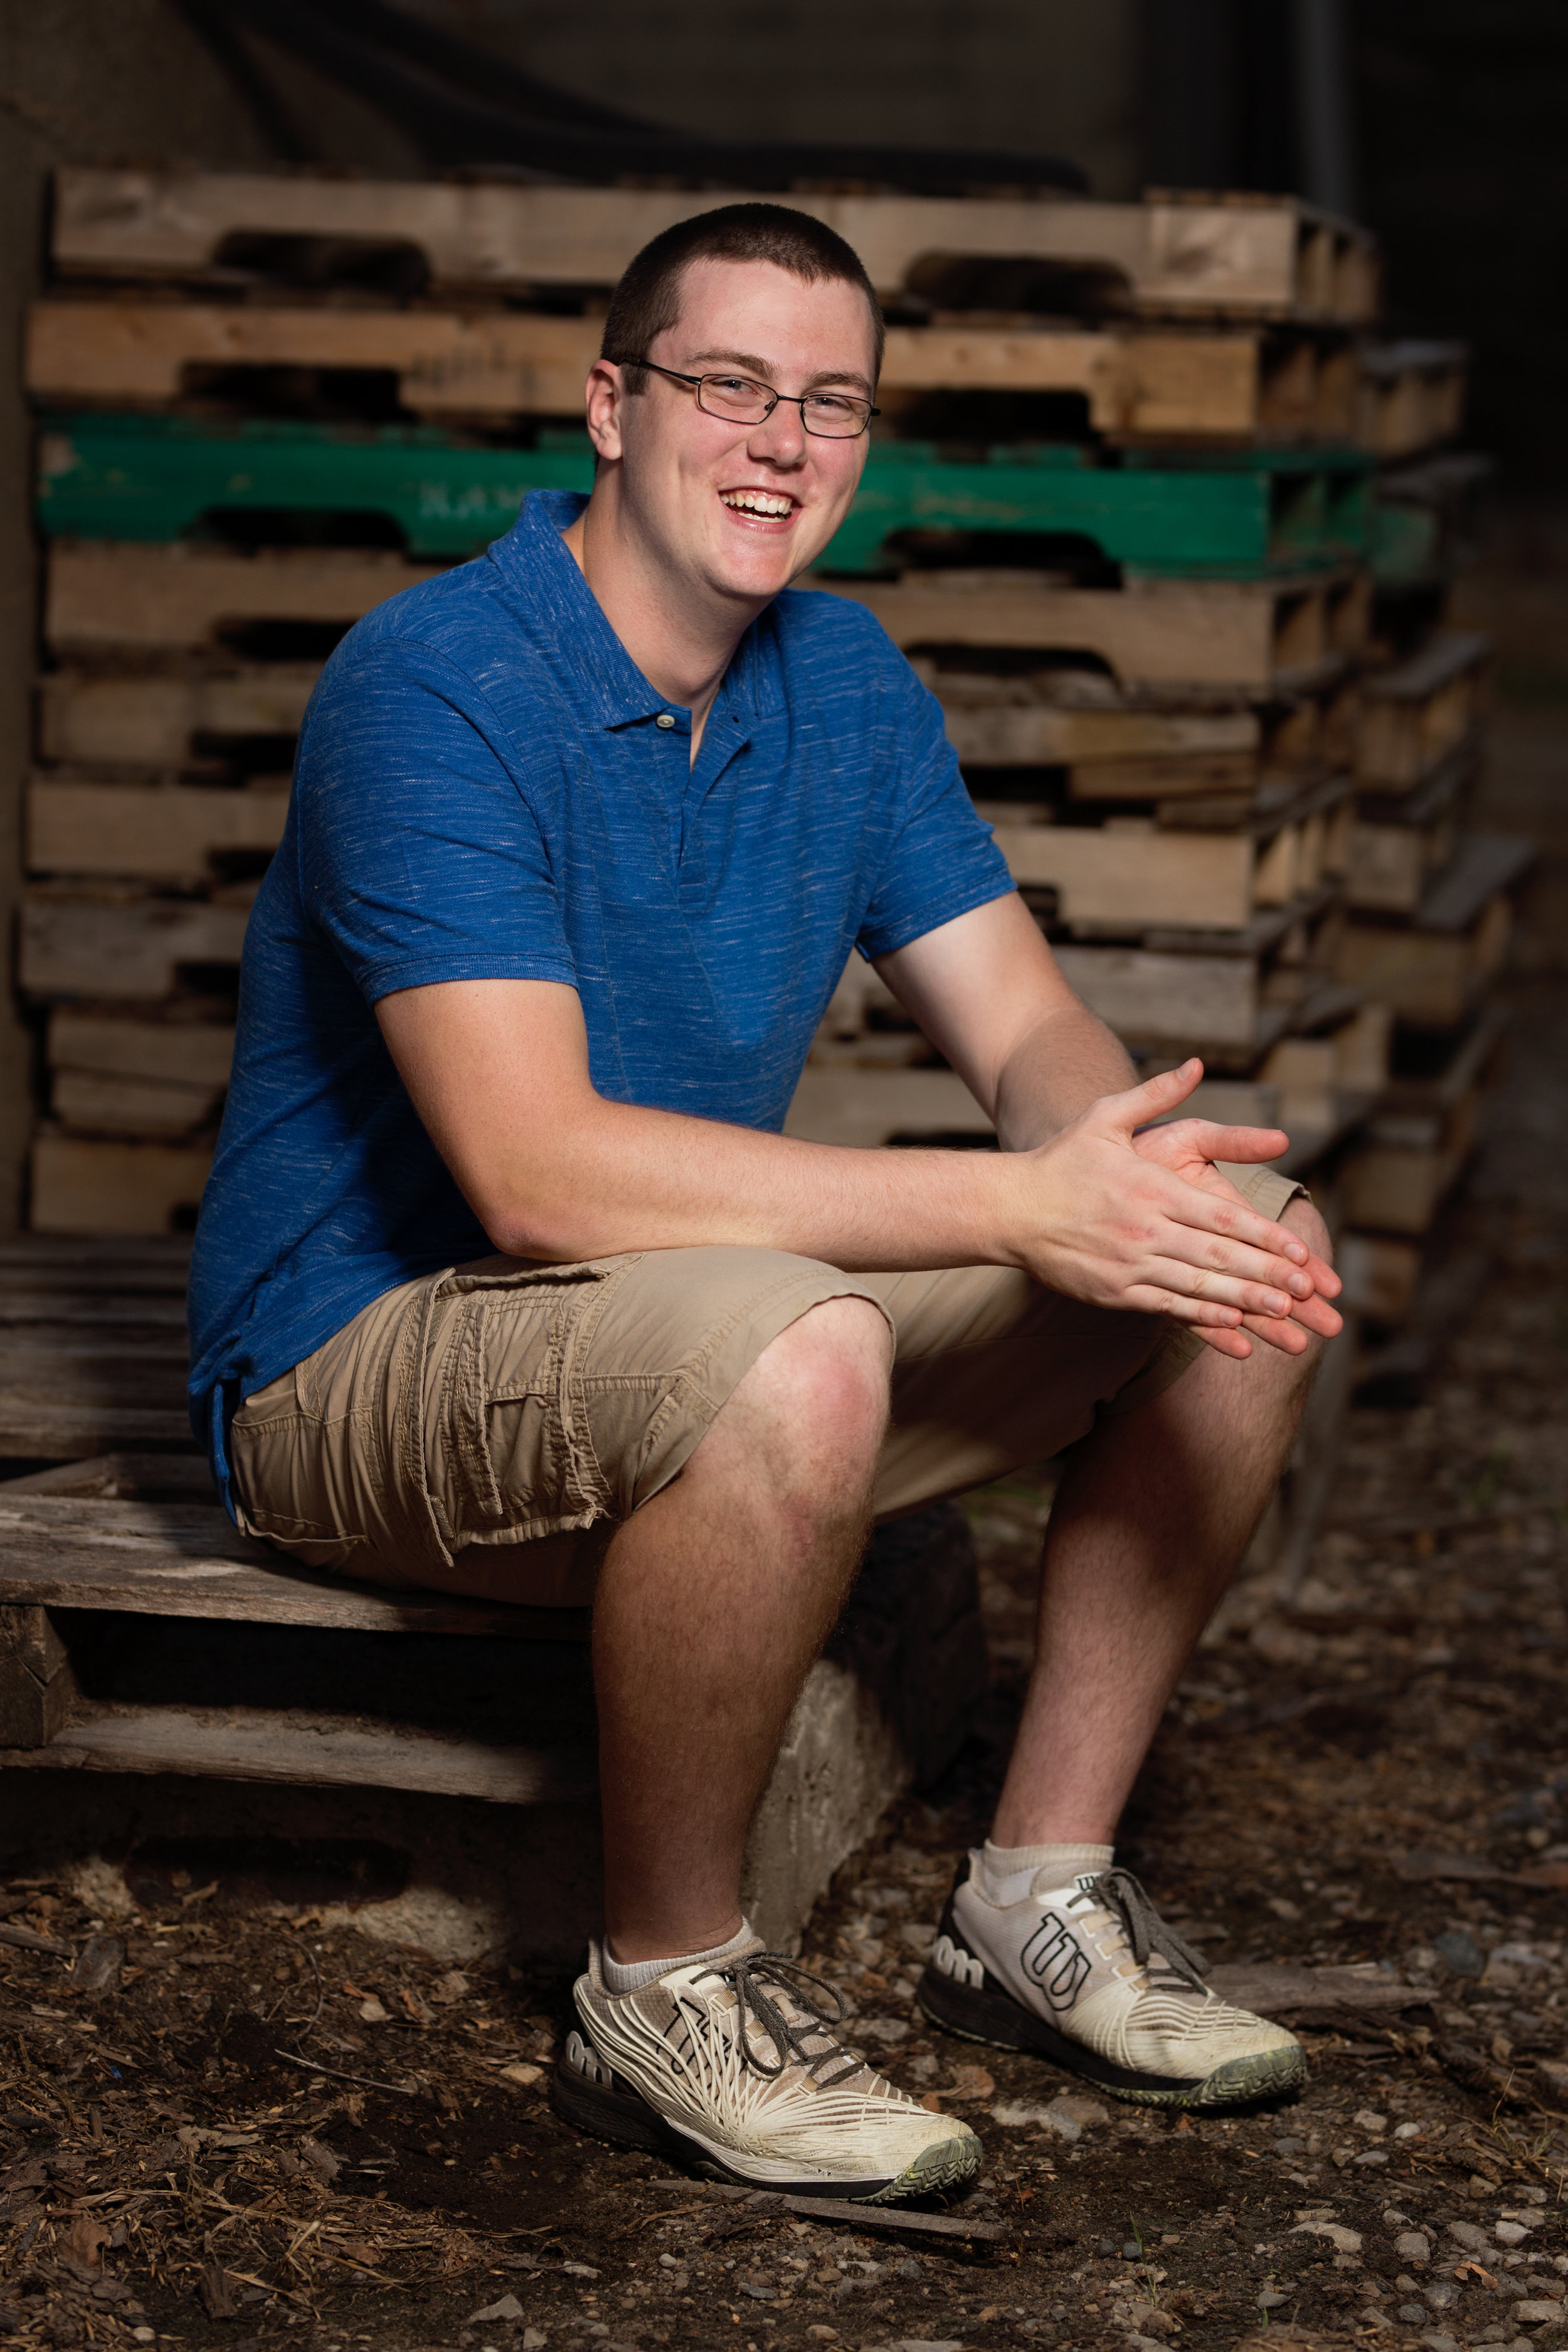 Senior picture in front of pallets